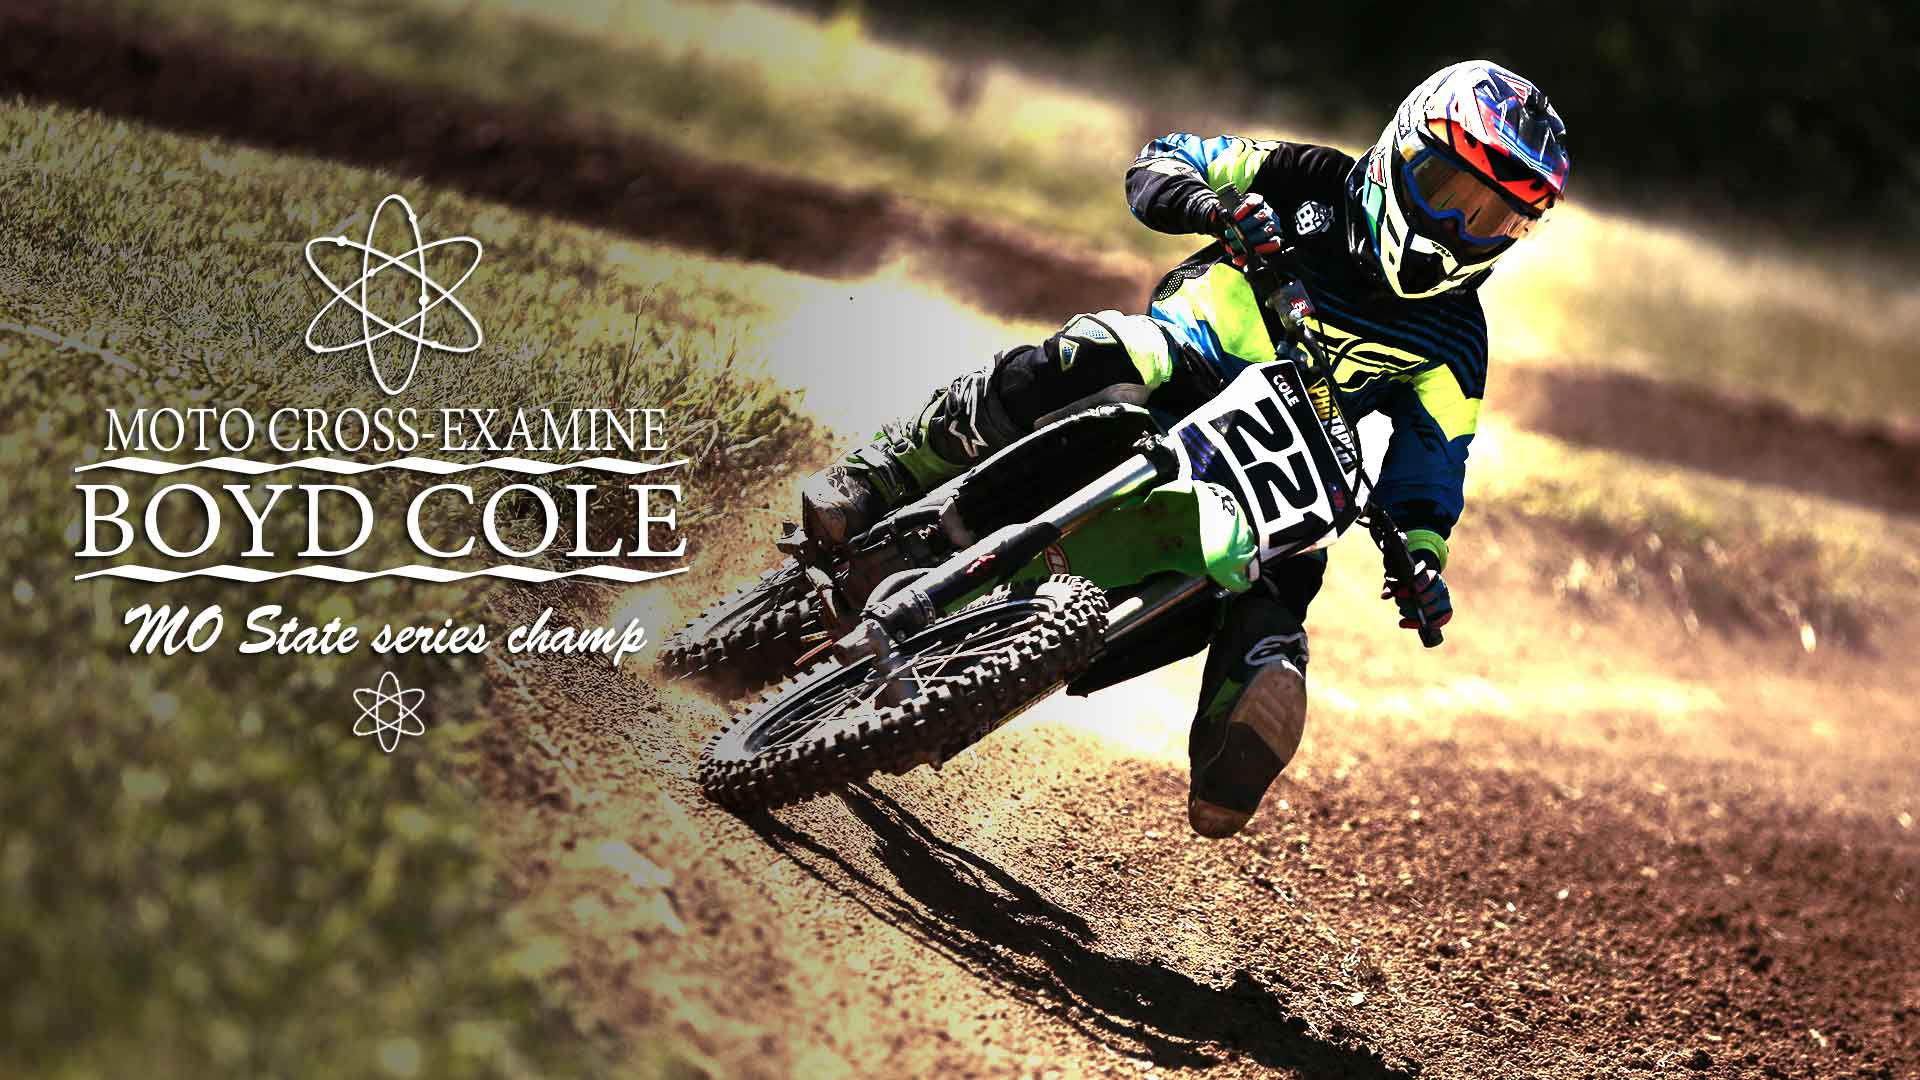 Moto Cross-Examine: Boyd Cole